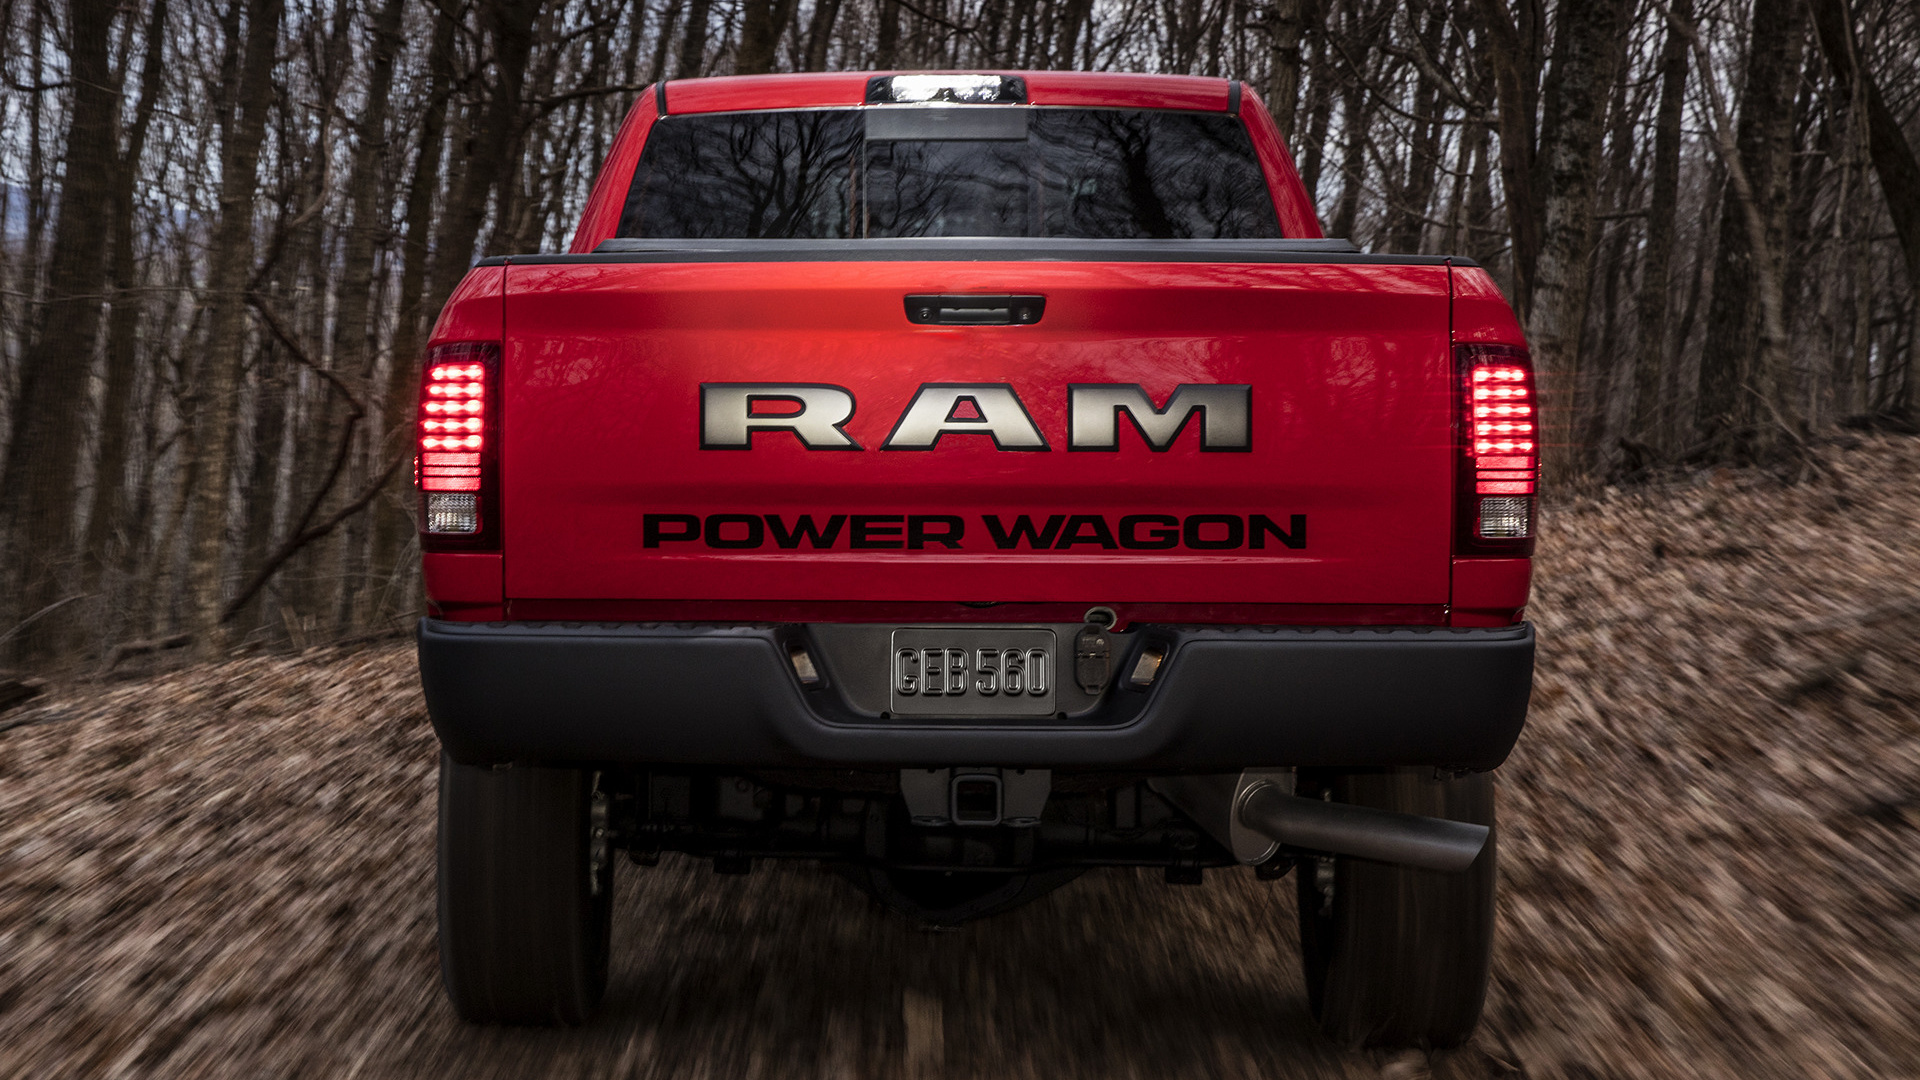 2017 Ram 2500 Power Wagon Crew Cab Wallpapers And Hd